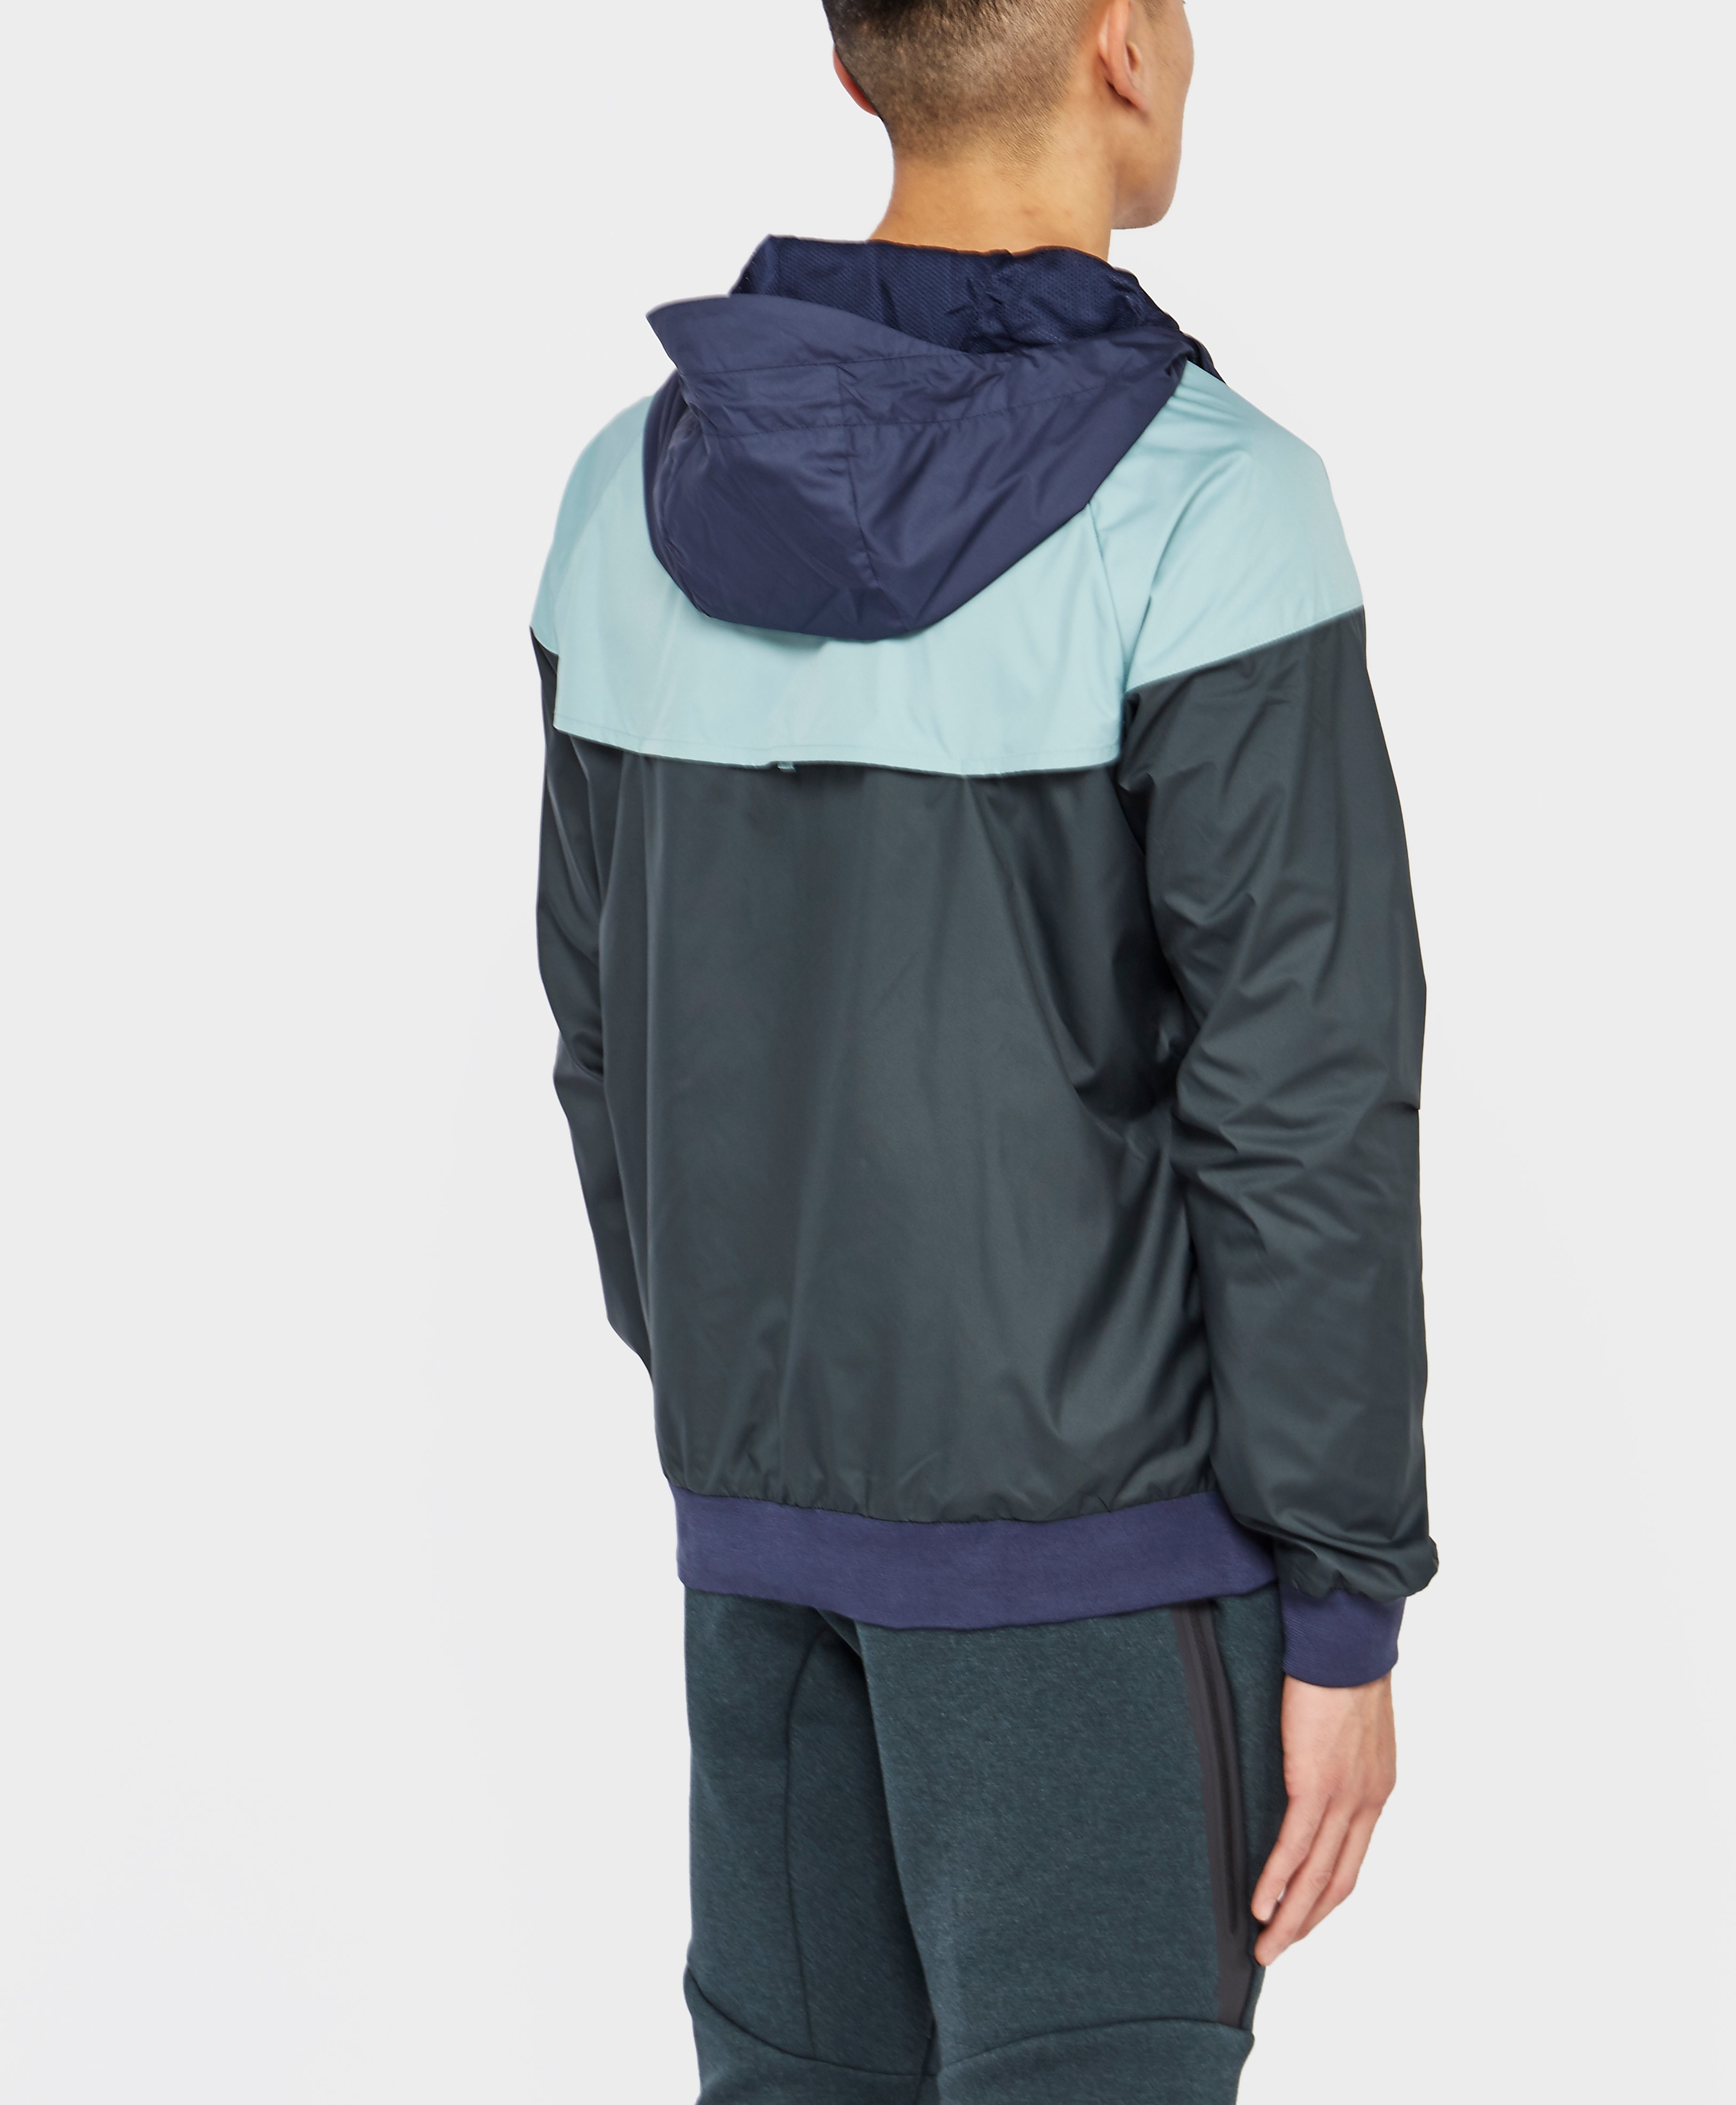 Nike Windrunner Lightweight Jacket